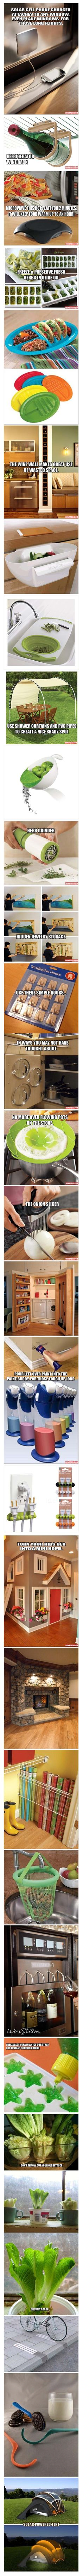 Even More Simple Ideas that are Borderline Genius.